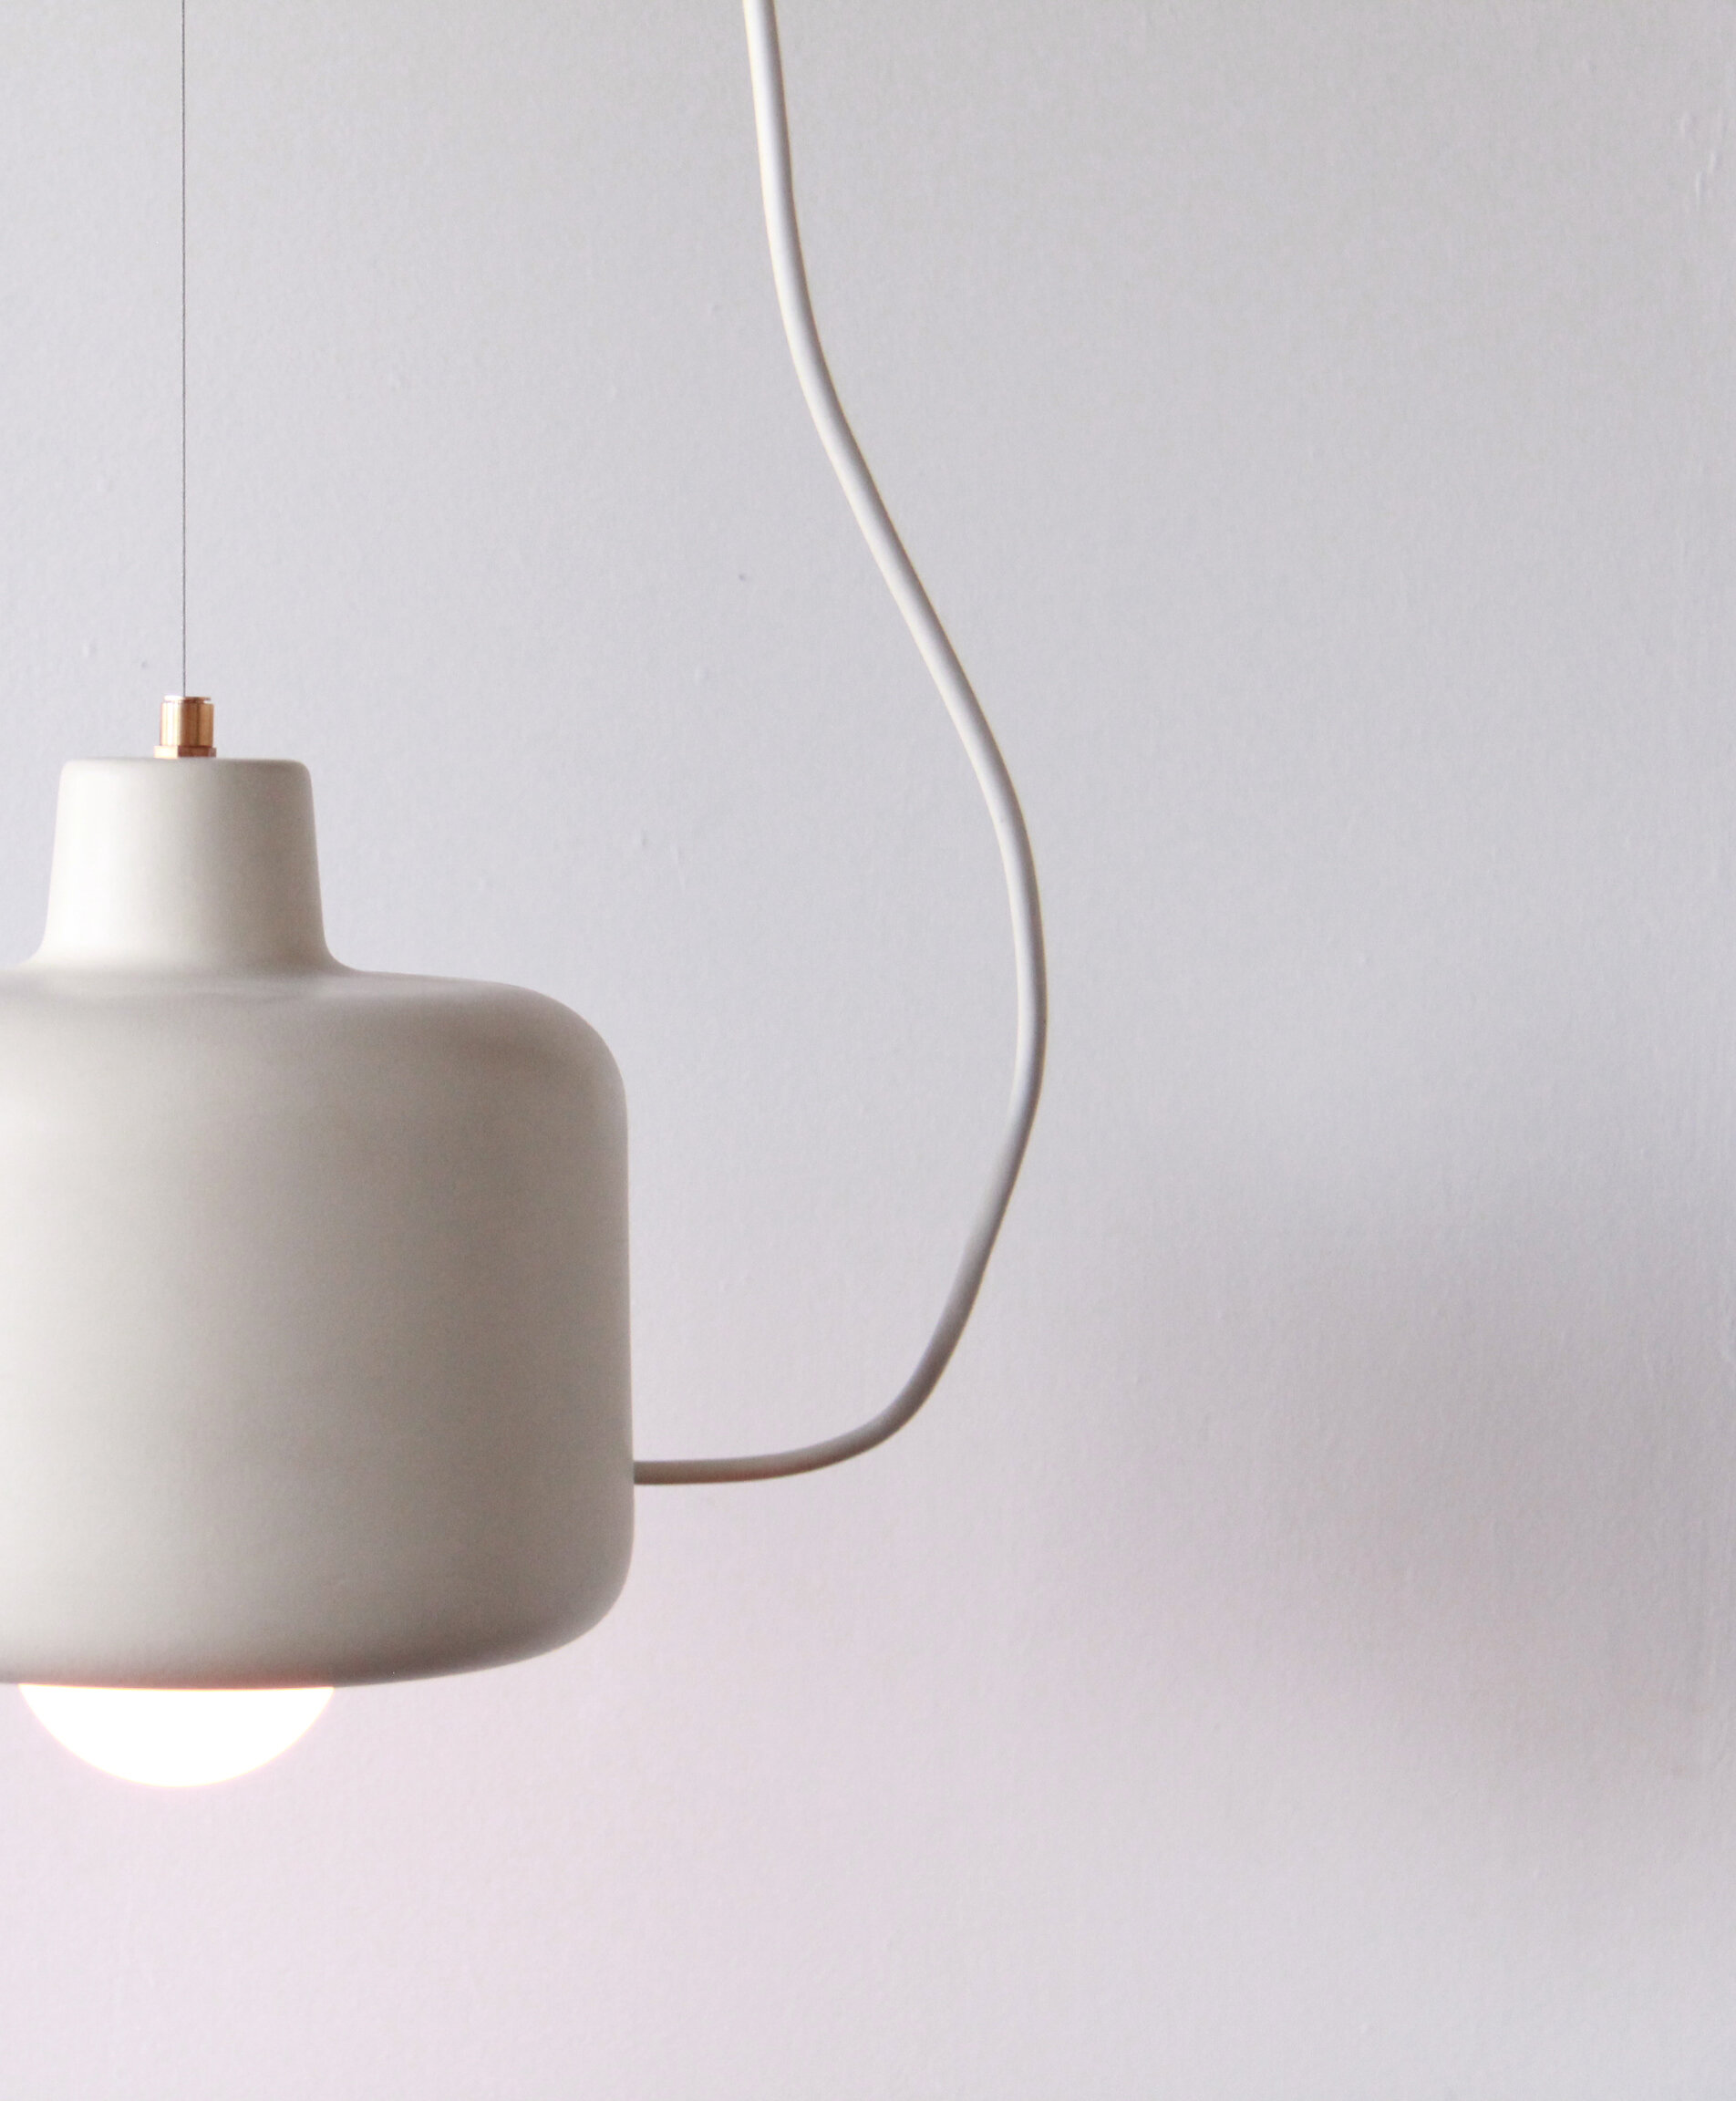 studio-botté_beige_Ramik_lamp_lighting_design_pendant_suspension_light_upcyle_ceramic_3.jpg